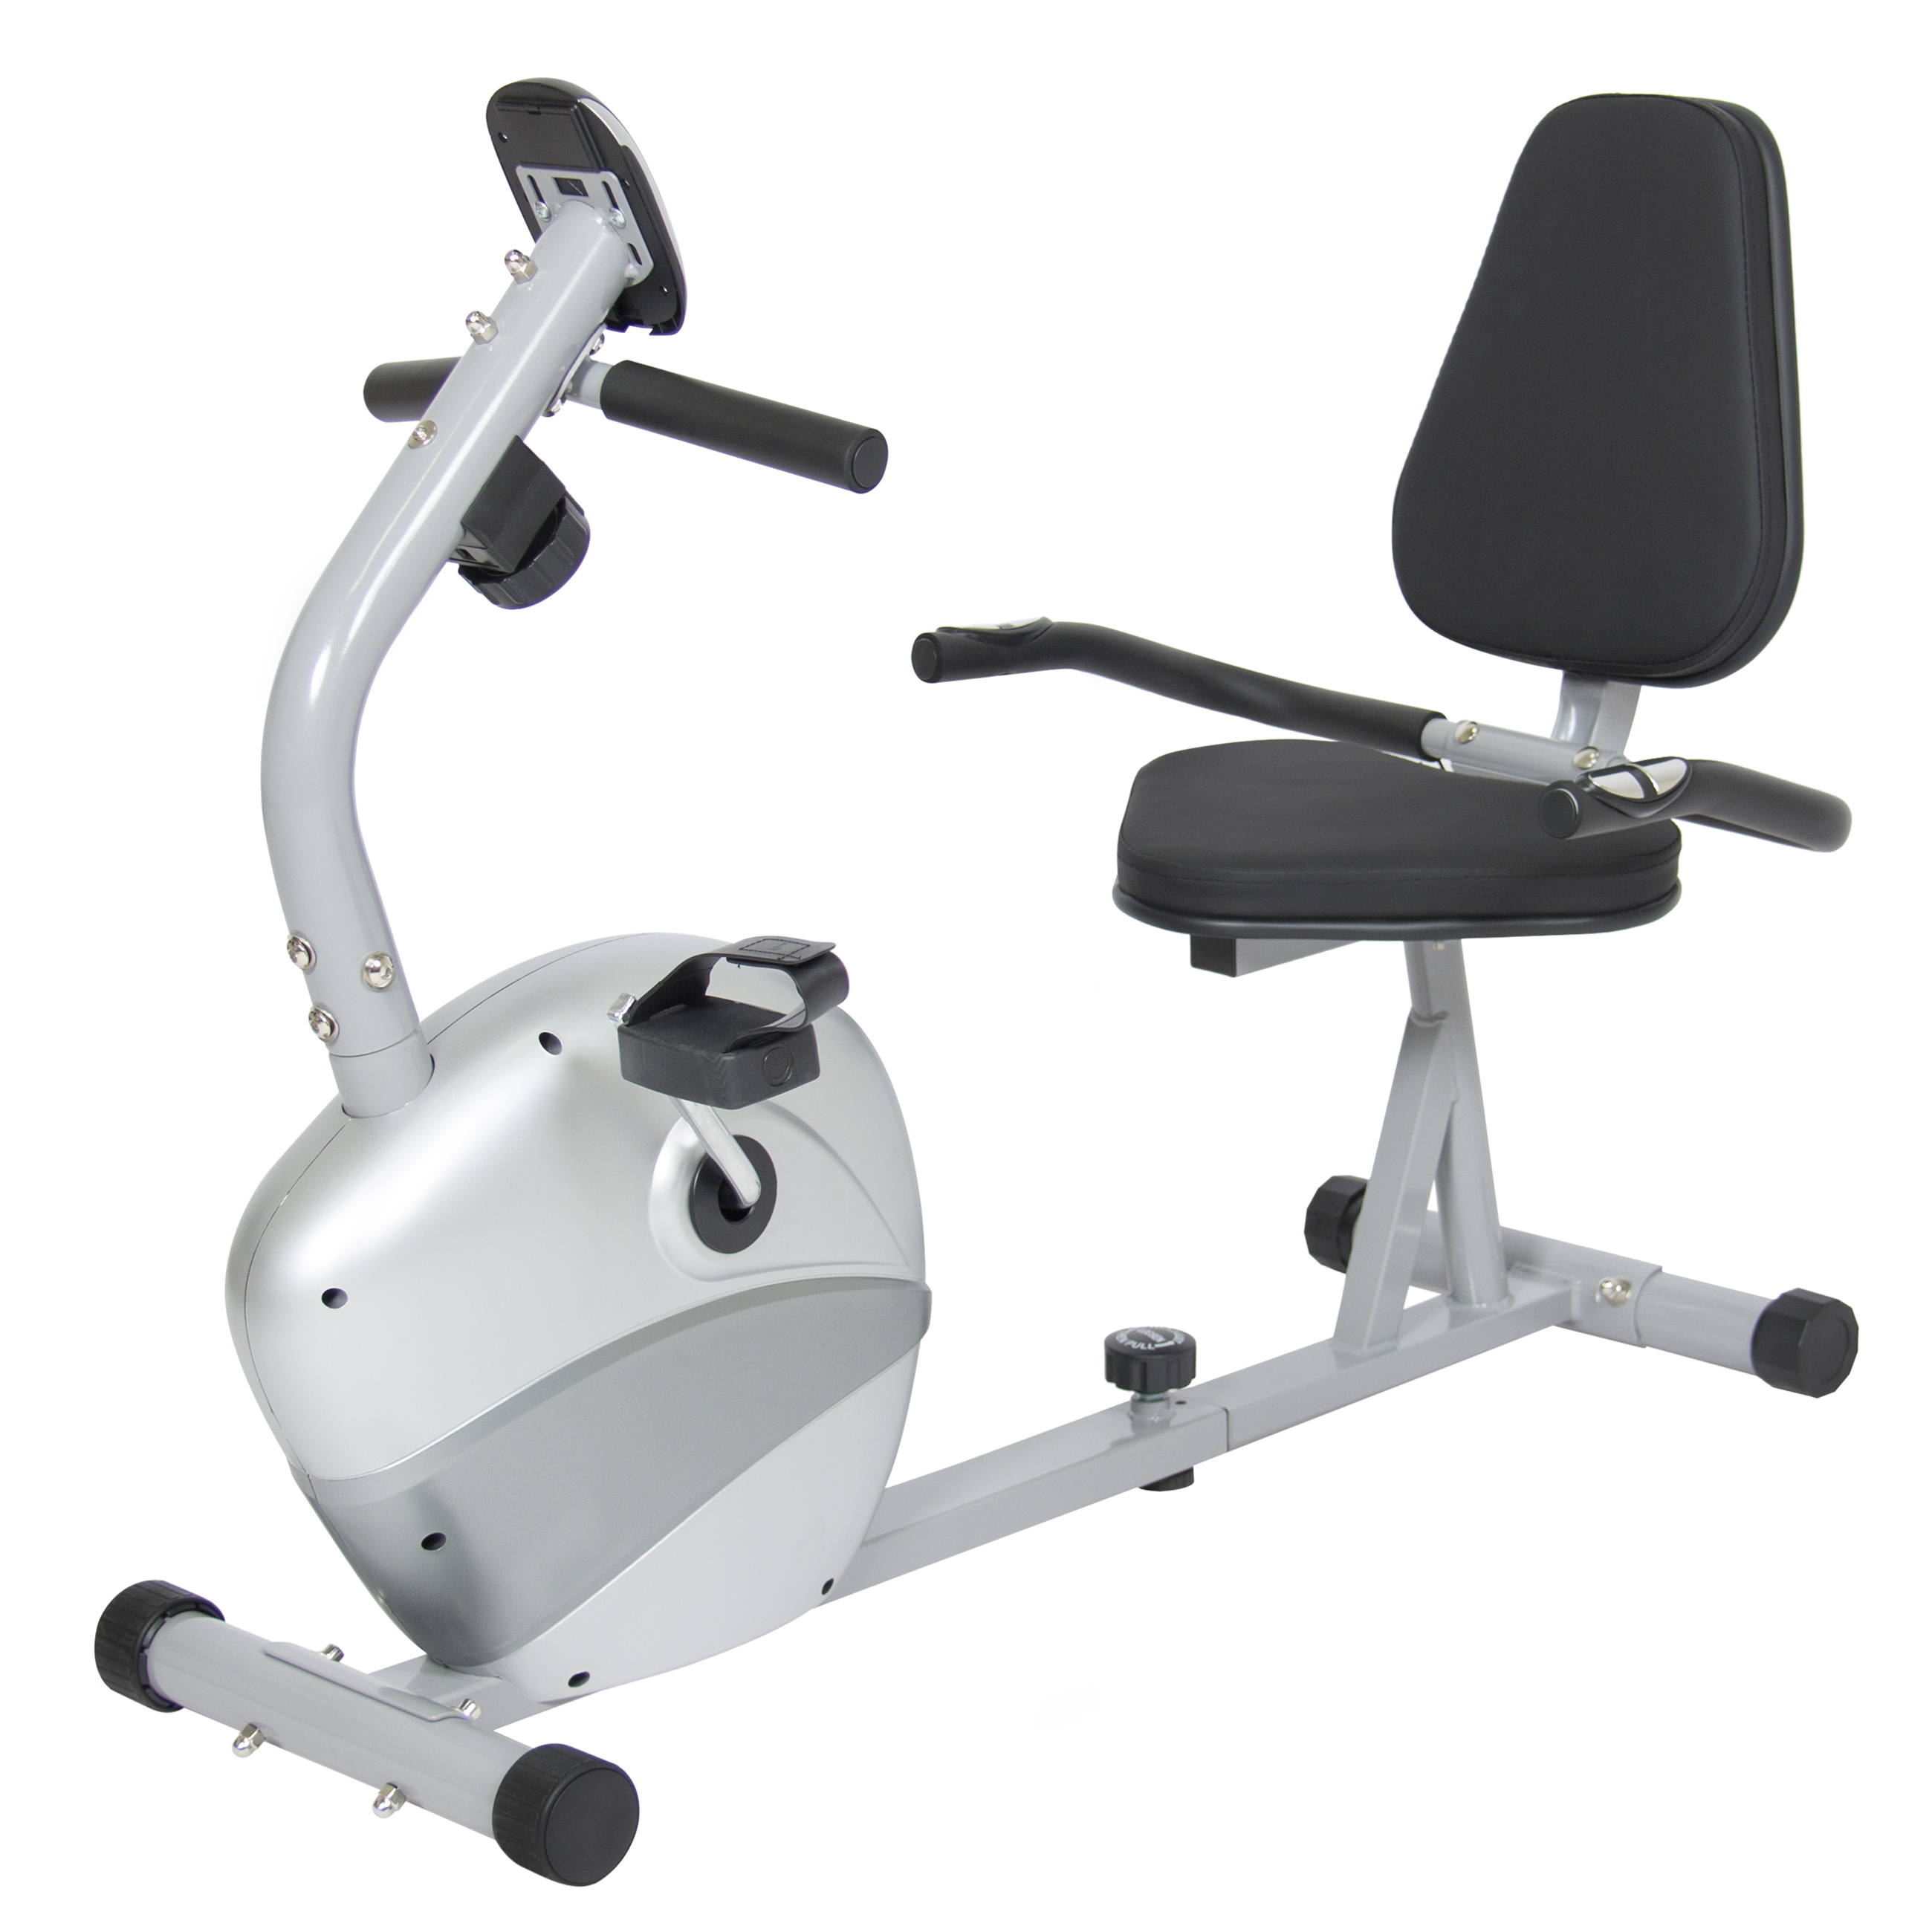 Best Choice Products Stationary Recumbent Exercise Bike Cardio Fitness Equipment by